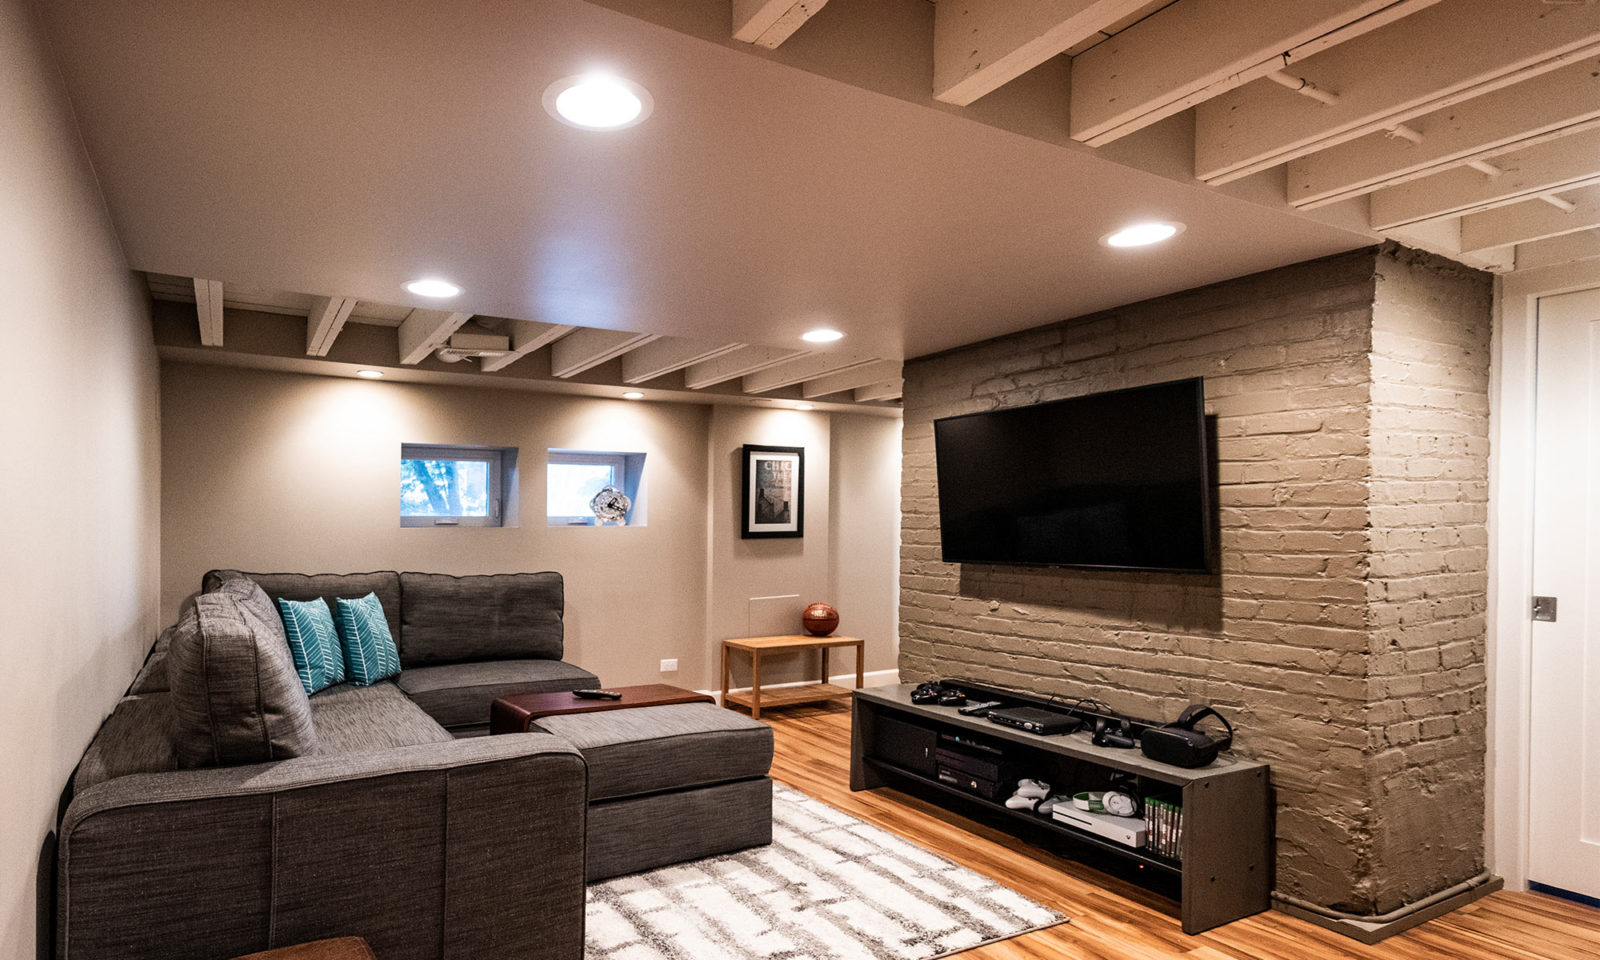 view of new basement rec room and wall mounted TV